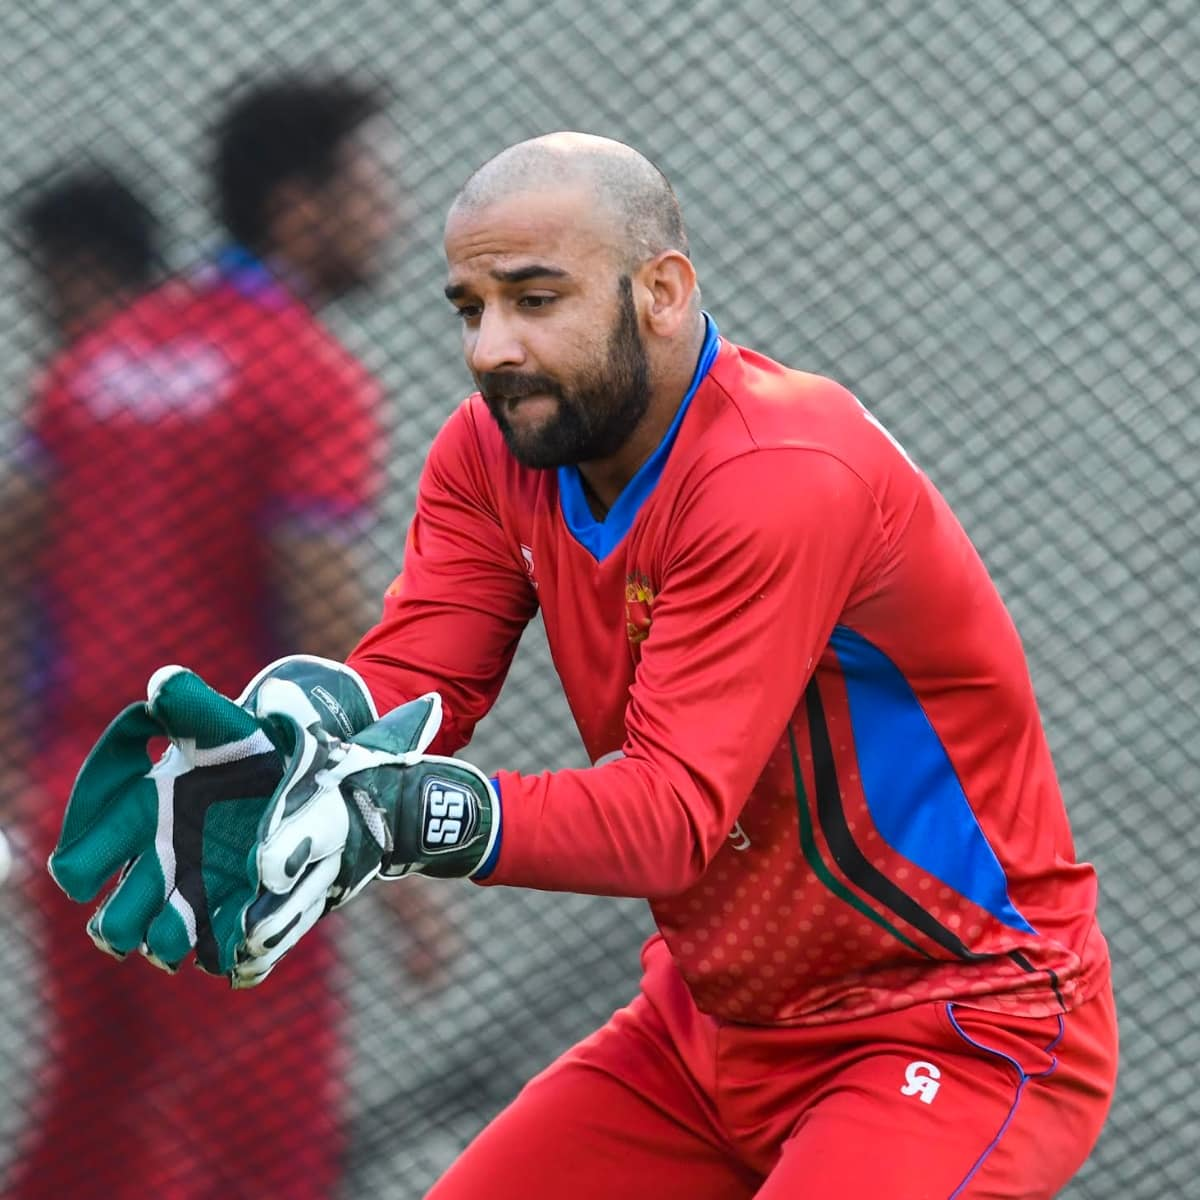 Afghanistan player Shafiqullah Shafiq has been banned for 6 years for Corruption